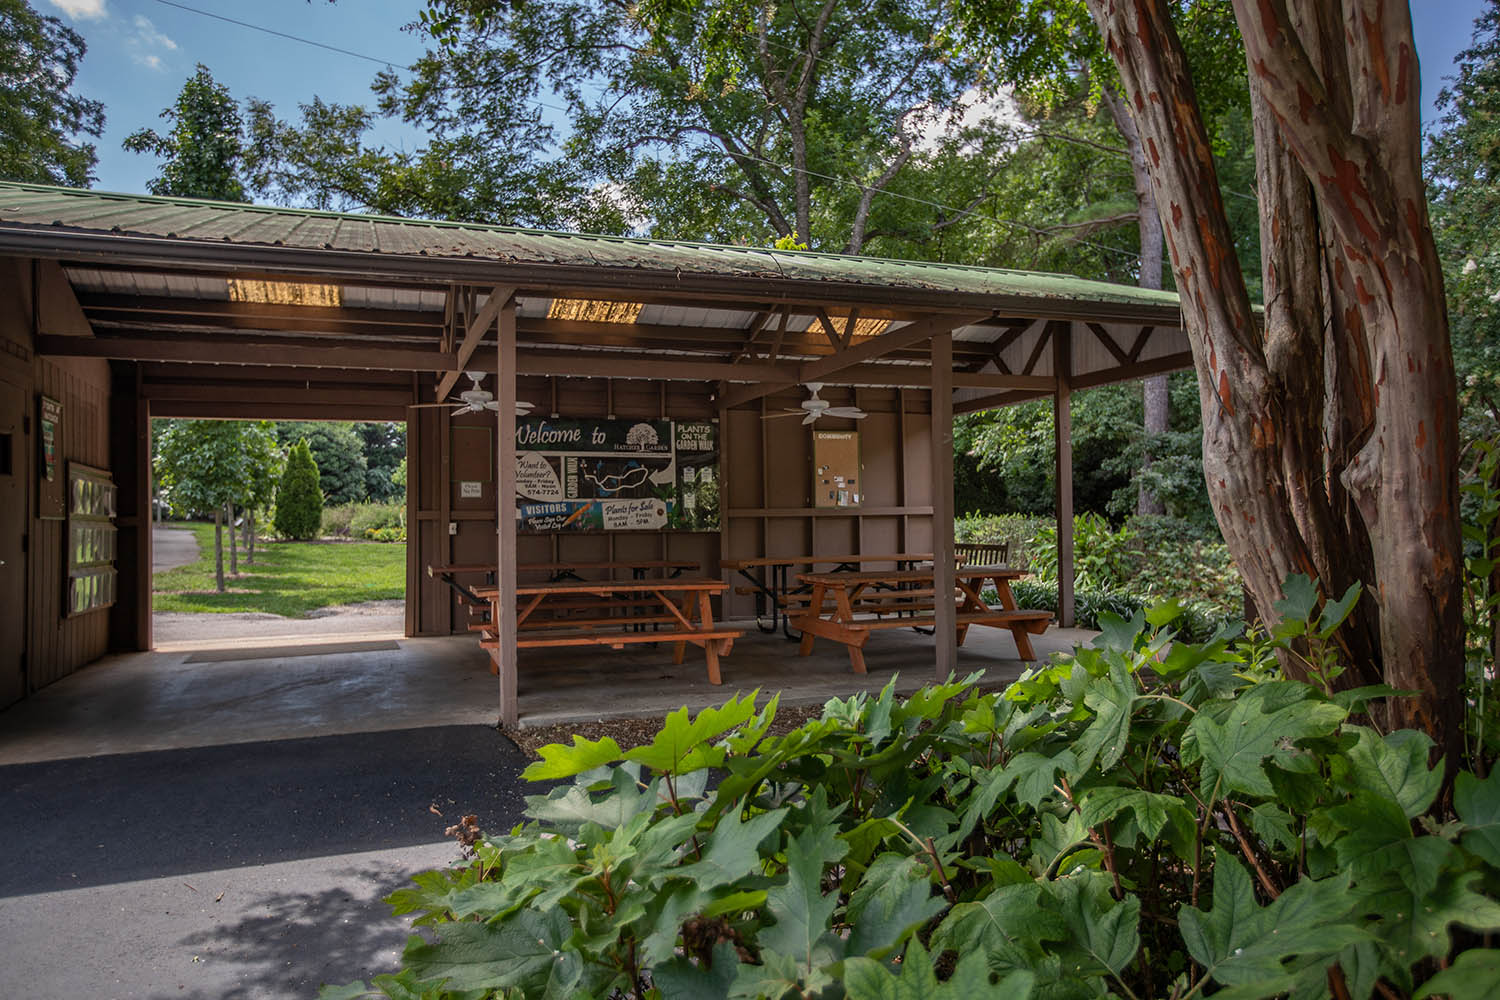 Jess Taylor Pavilion - An amenable gathering space with picnic tables and event-friendly facilities.